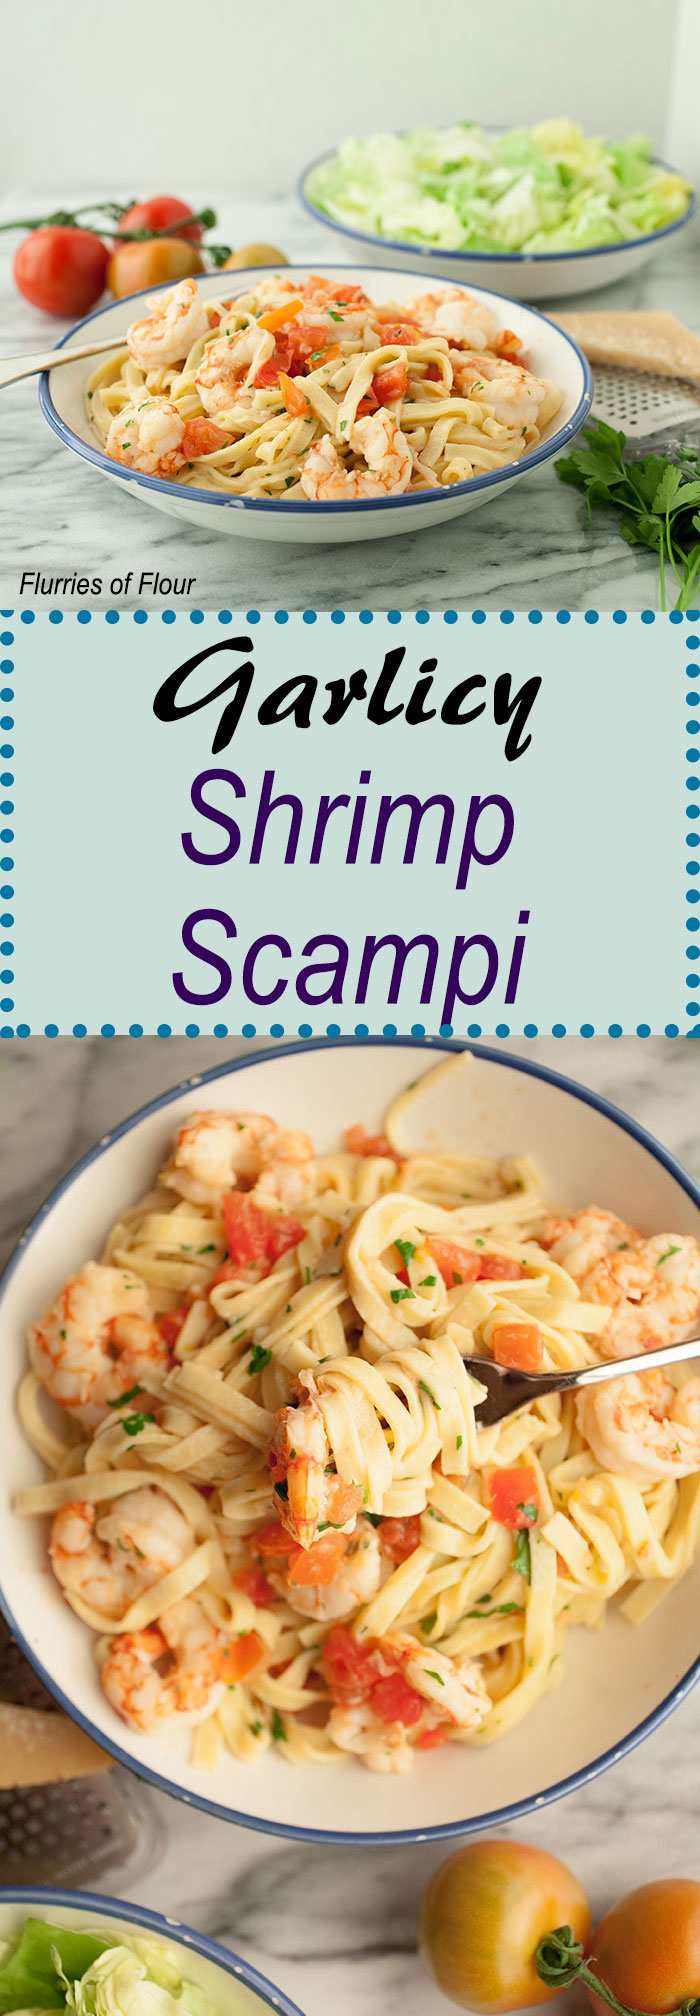 Pure comfort food that is quick and easy to make: that's this recipe for garlicky shrimp scampi. It's also perfectly impressive and something you can cook for someone special this Valentine's Day!